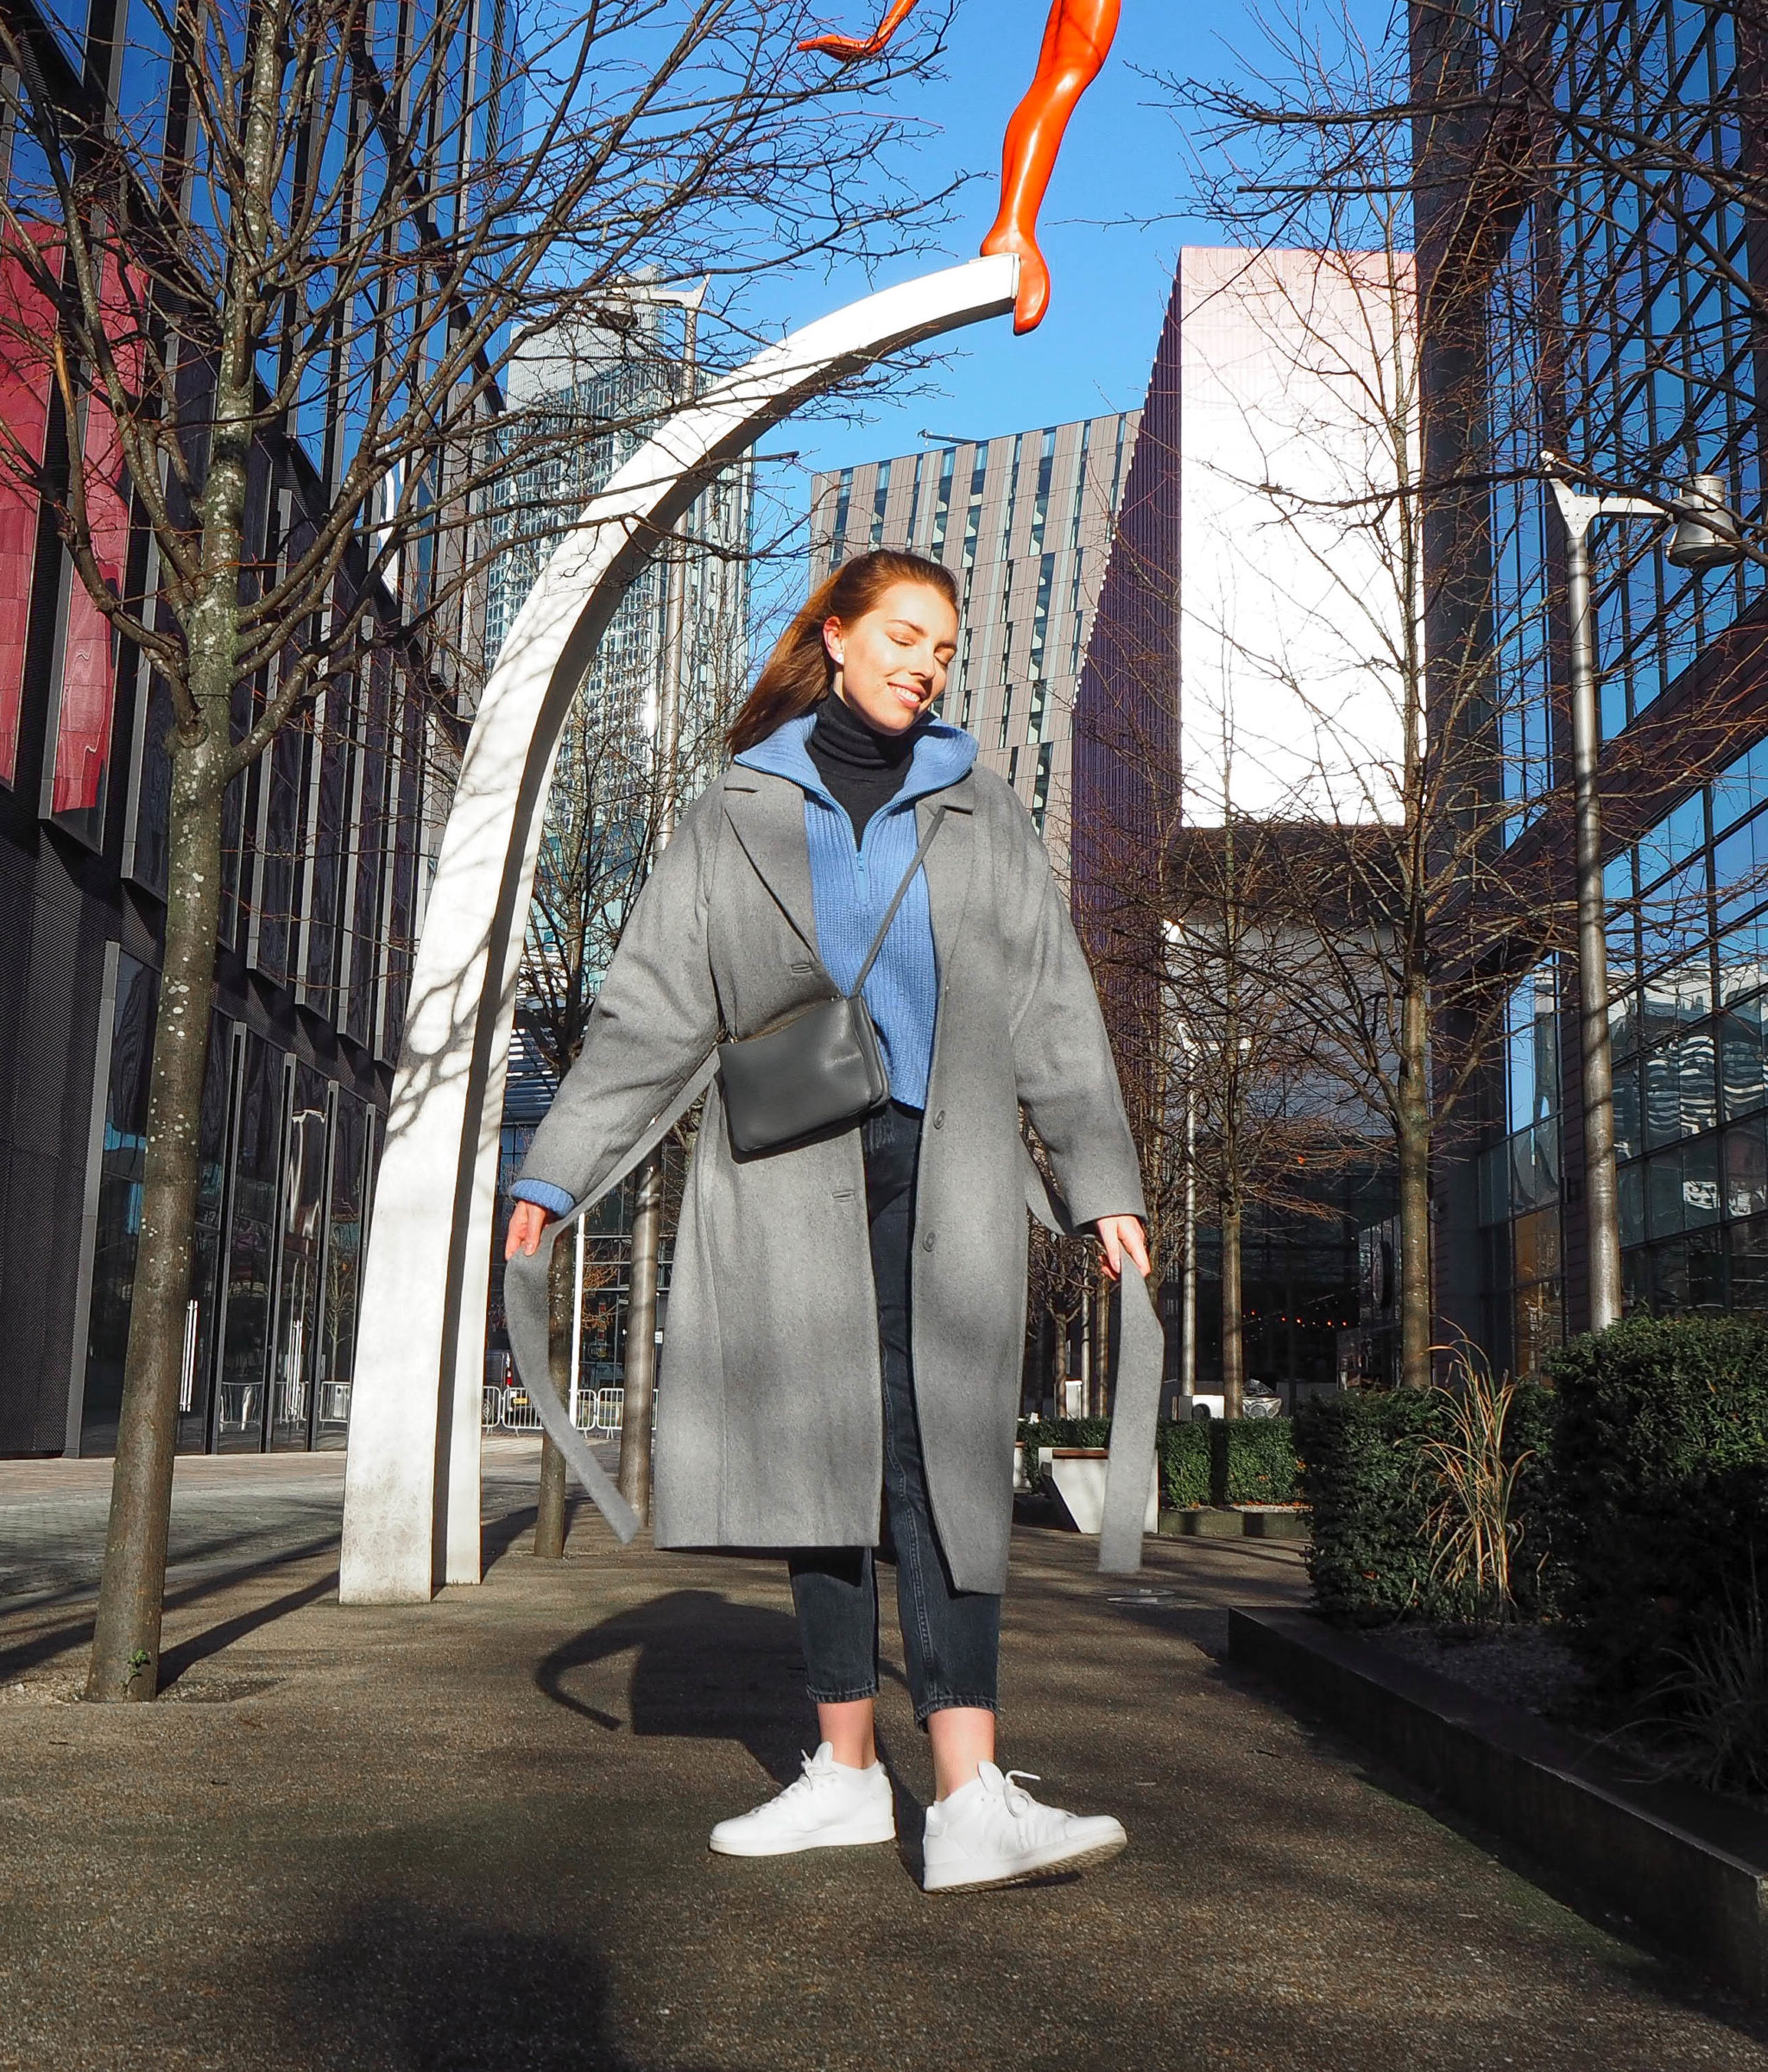 street style photograph girl wearing long grey coat with blue knitwear and white trainers